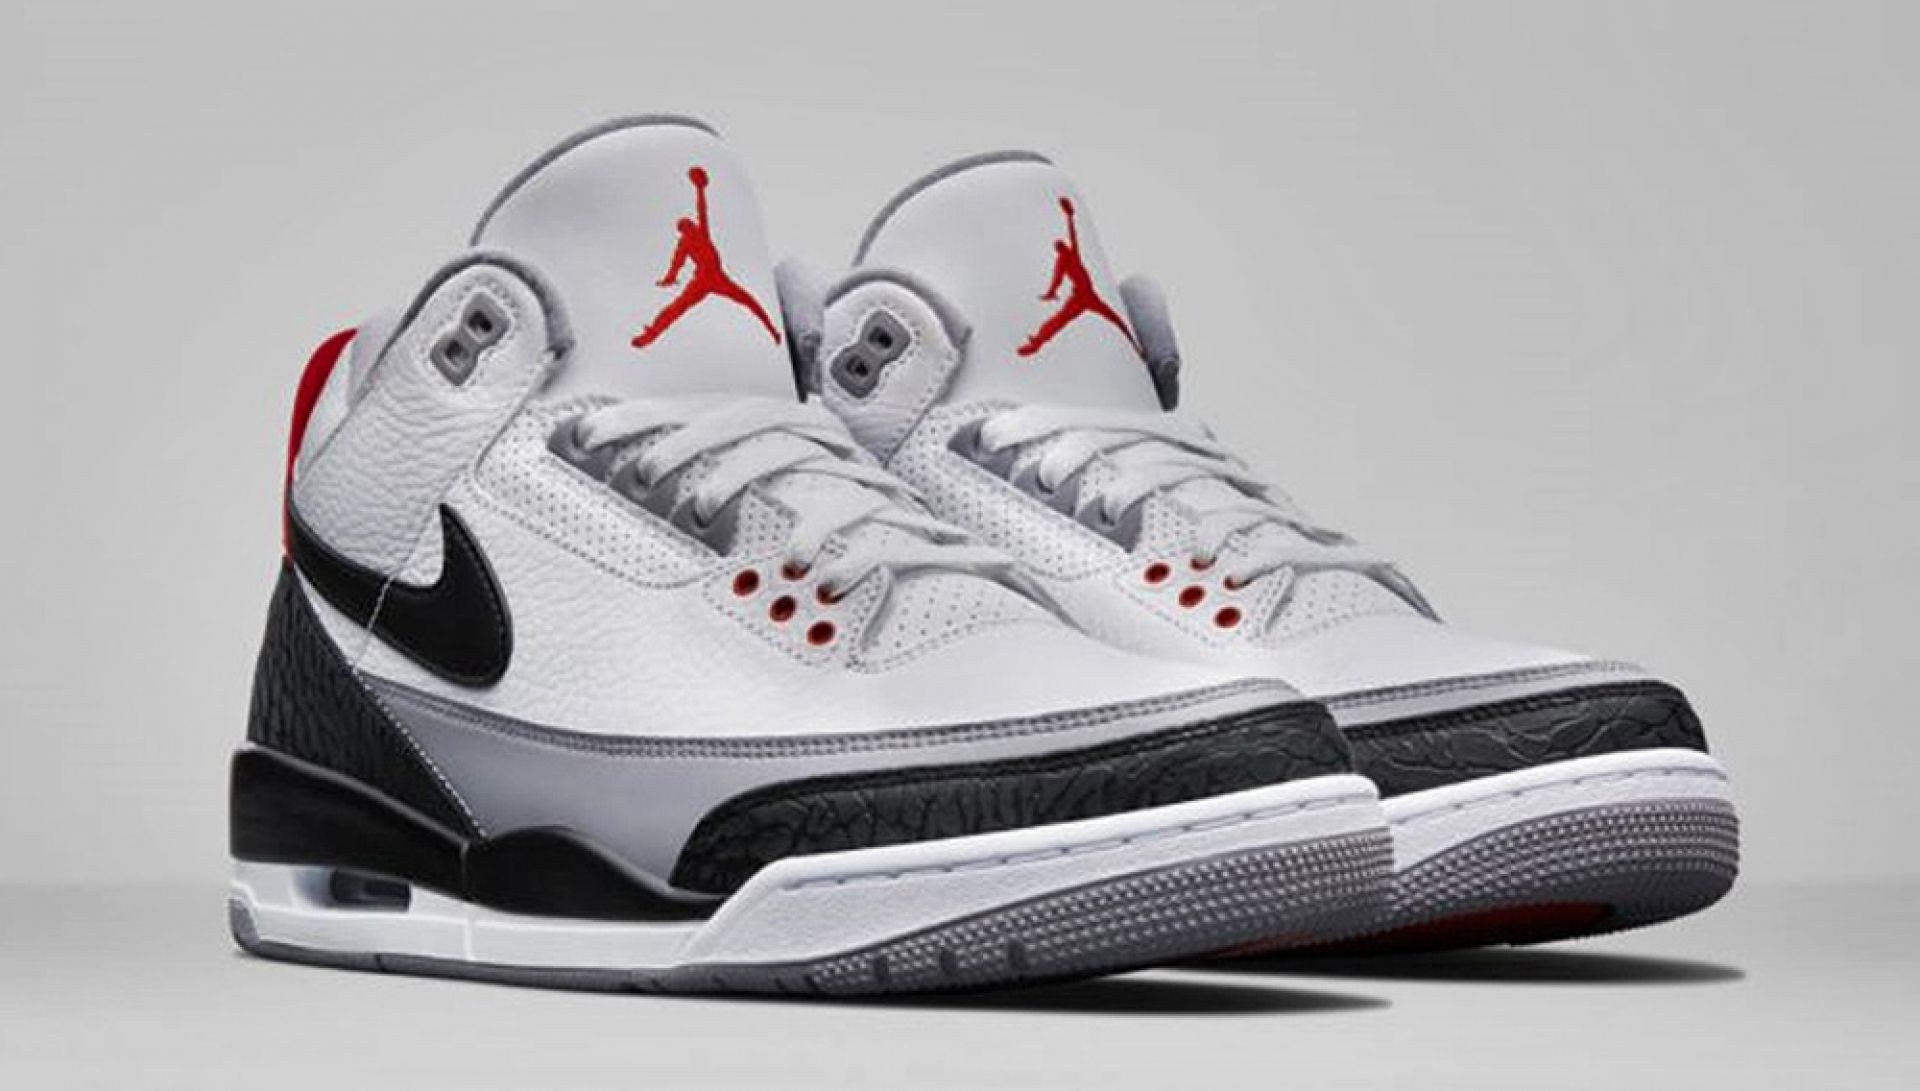 official photos a6b4c a9b8e Nike Air Jordan III quotTinkerquot